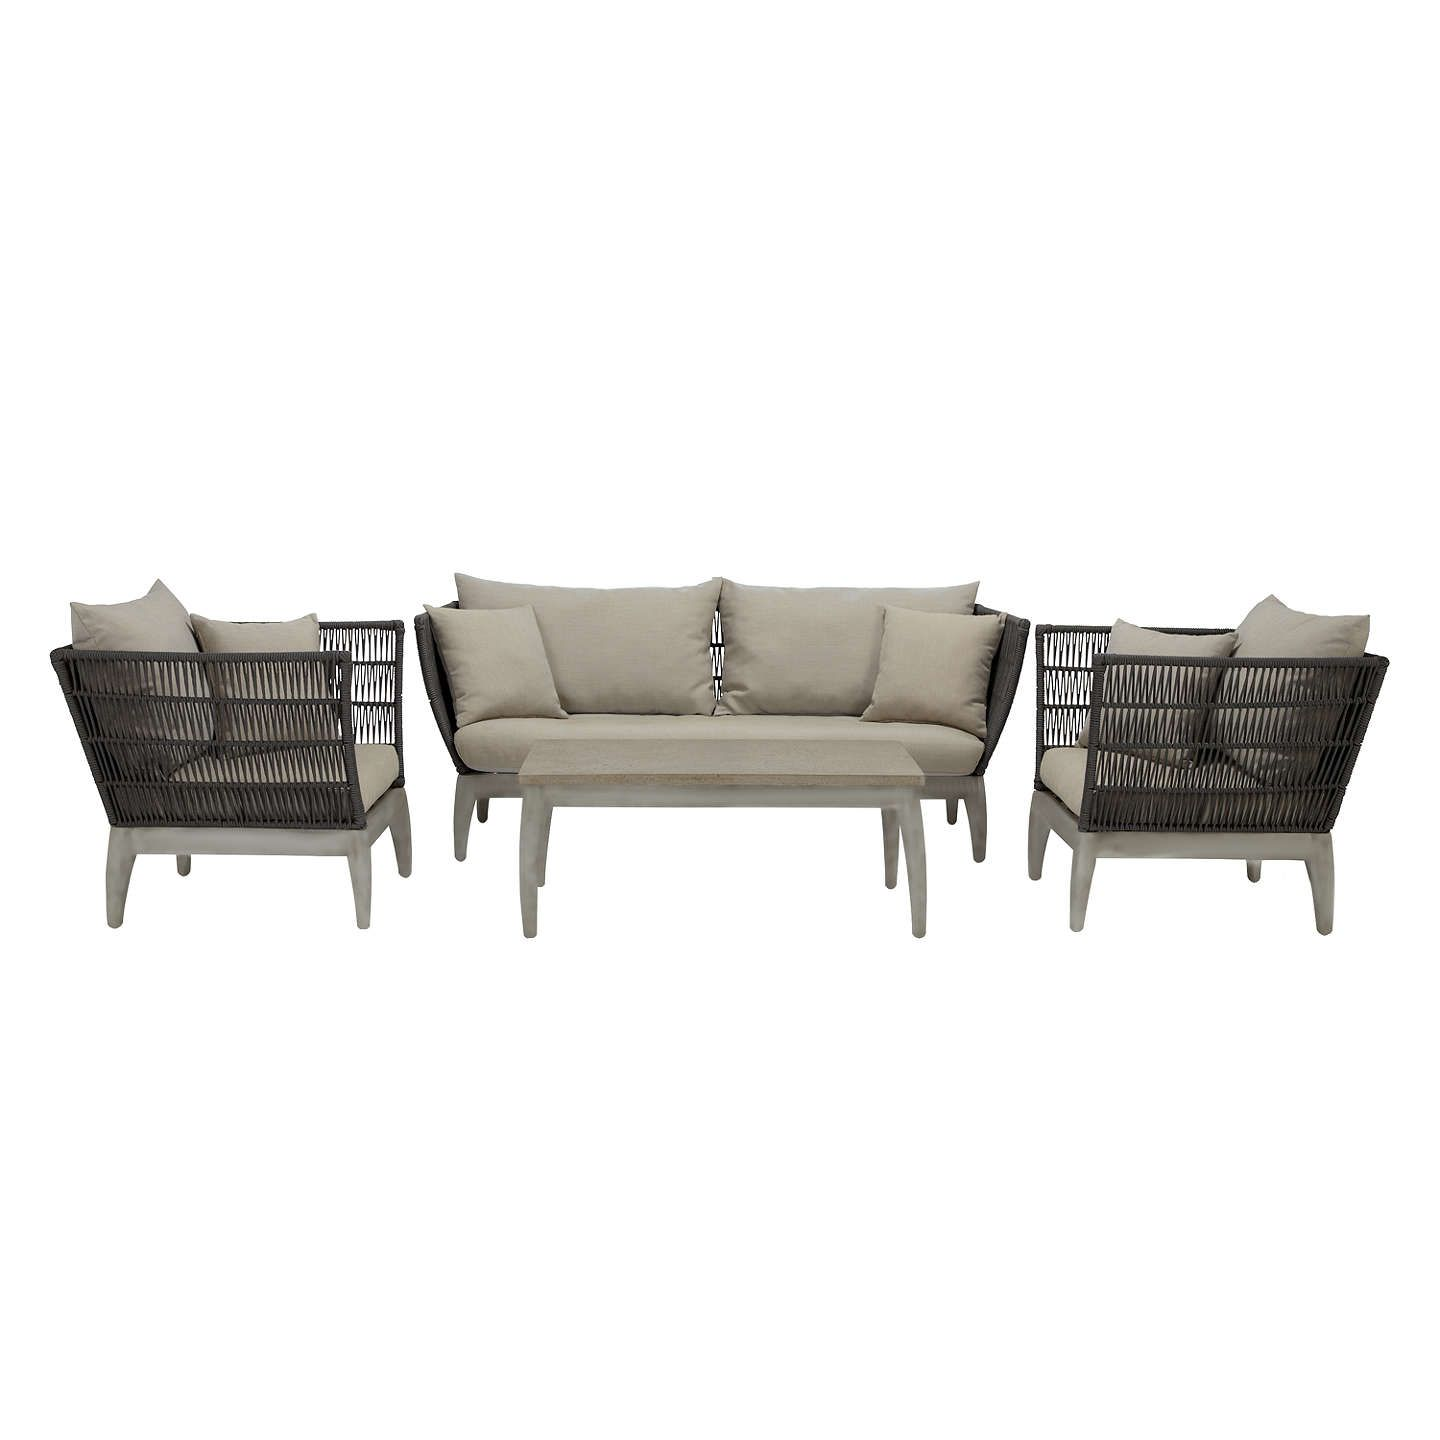 John Lewis Ariel 3 Seater Garden Sofa Coffee Table And Lounging Armchair Pair 3 Seater Sofa Outdoor Seat Cushions Sofa